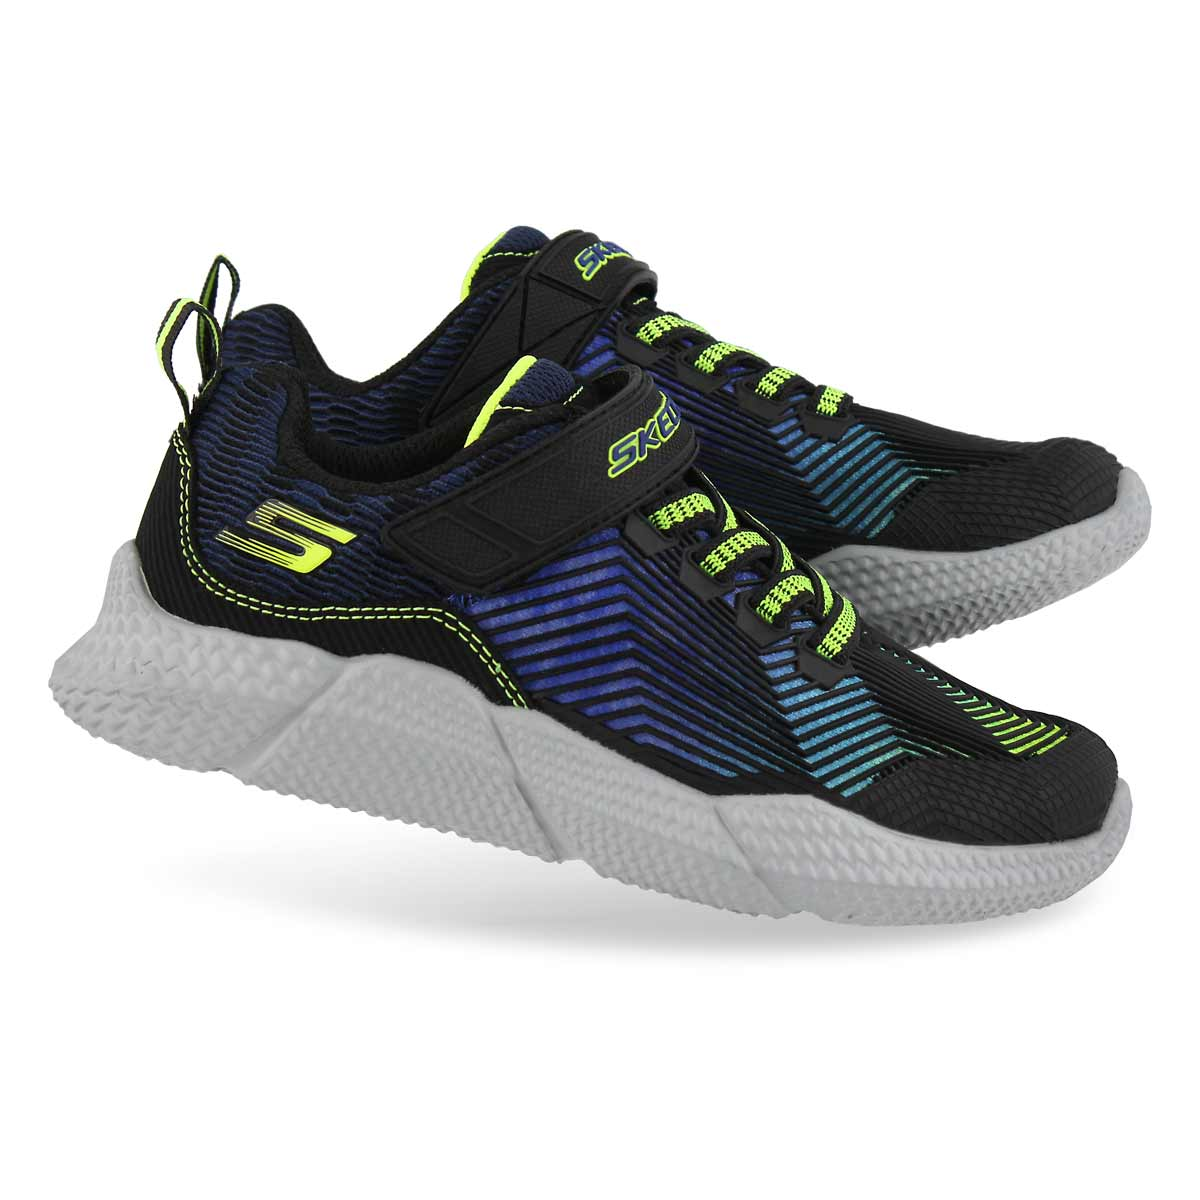 Boys' INTERSECTORS blue/lime sneakers